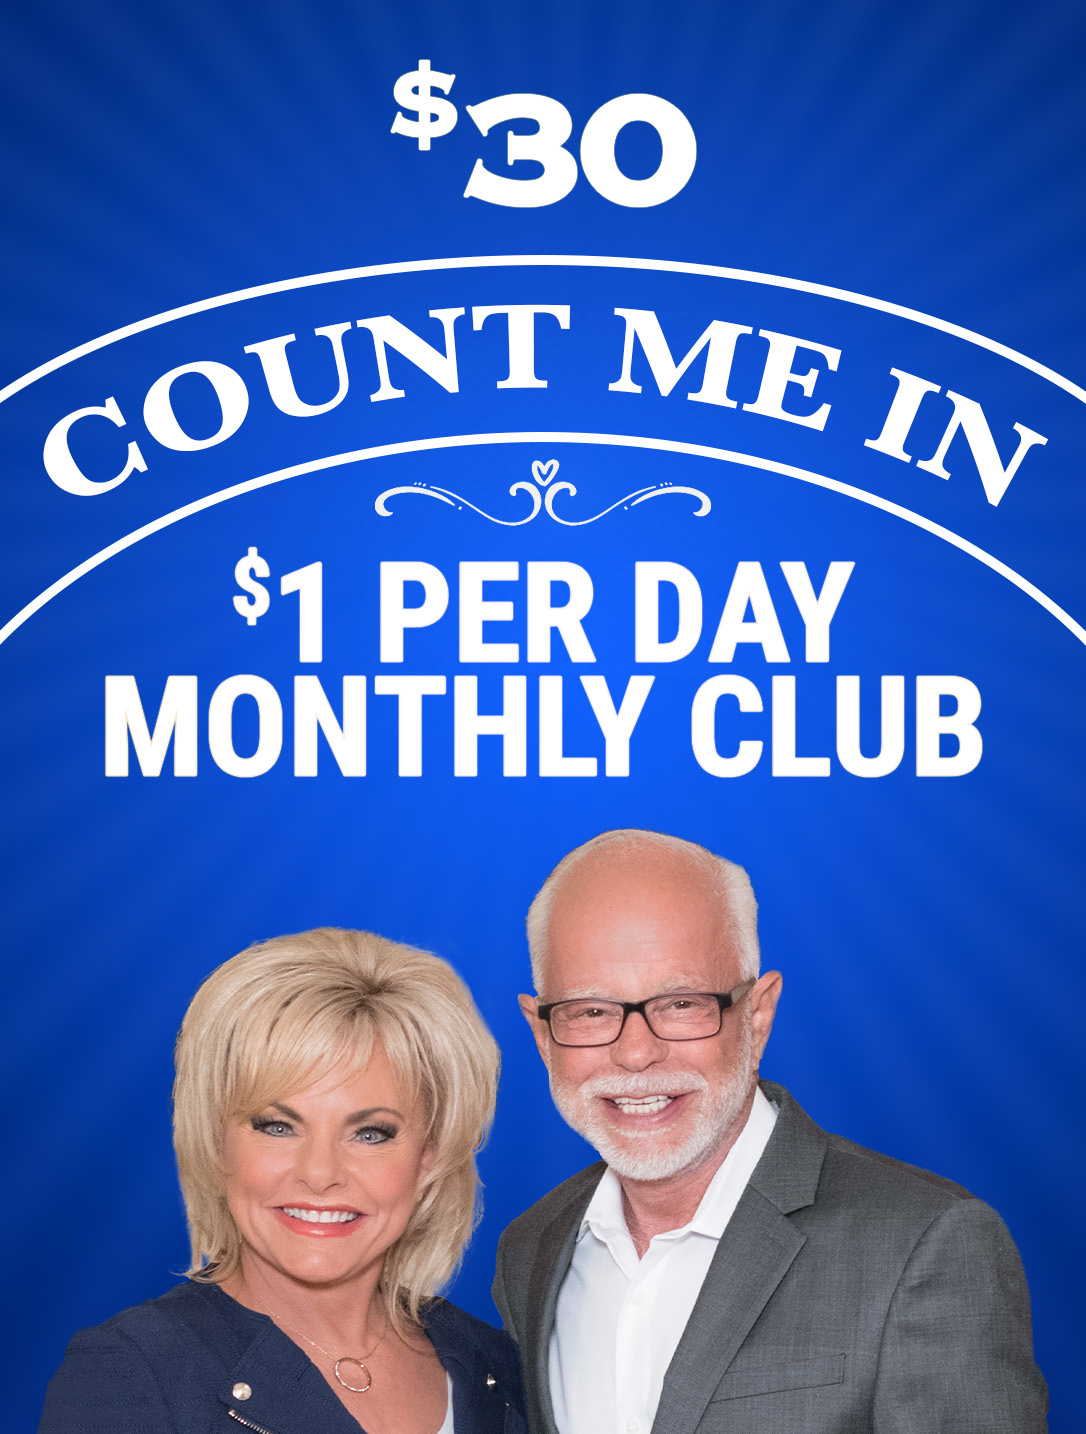 Count Me In - $1 Per Day Monthly Club